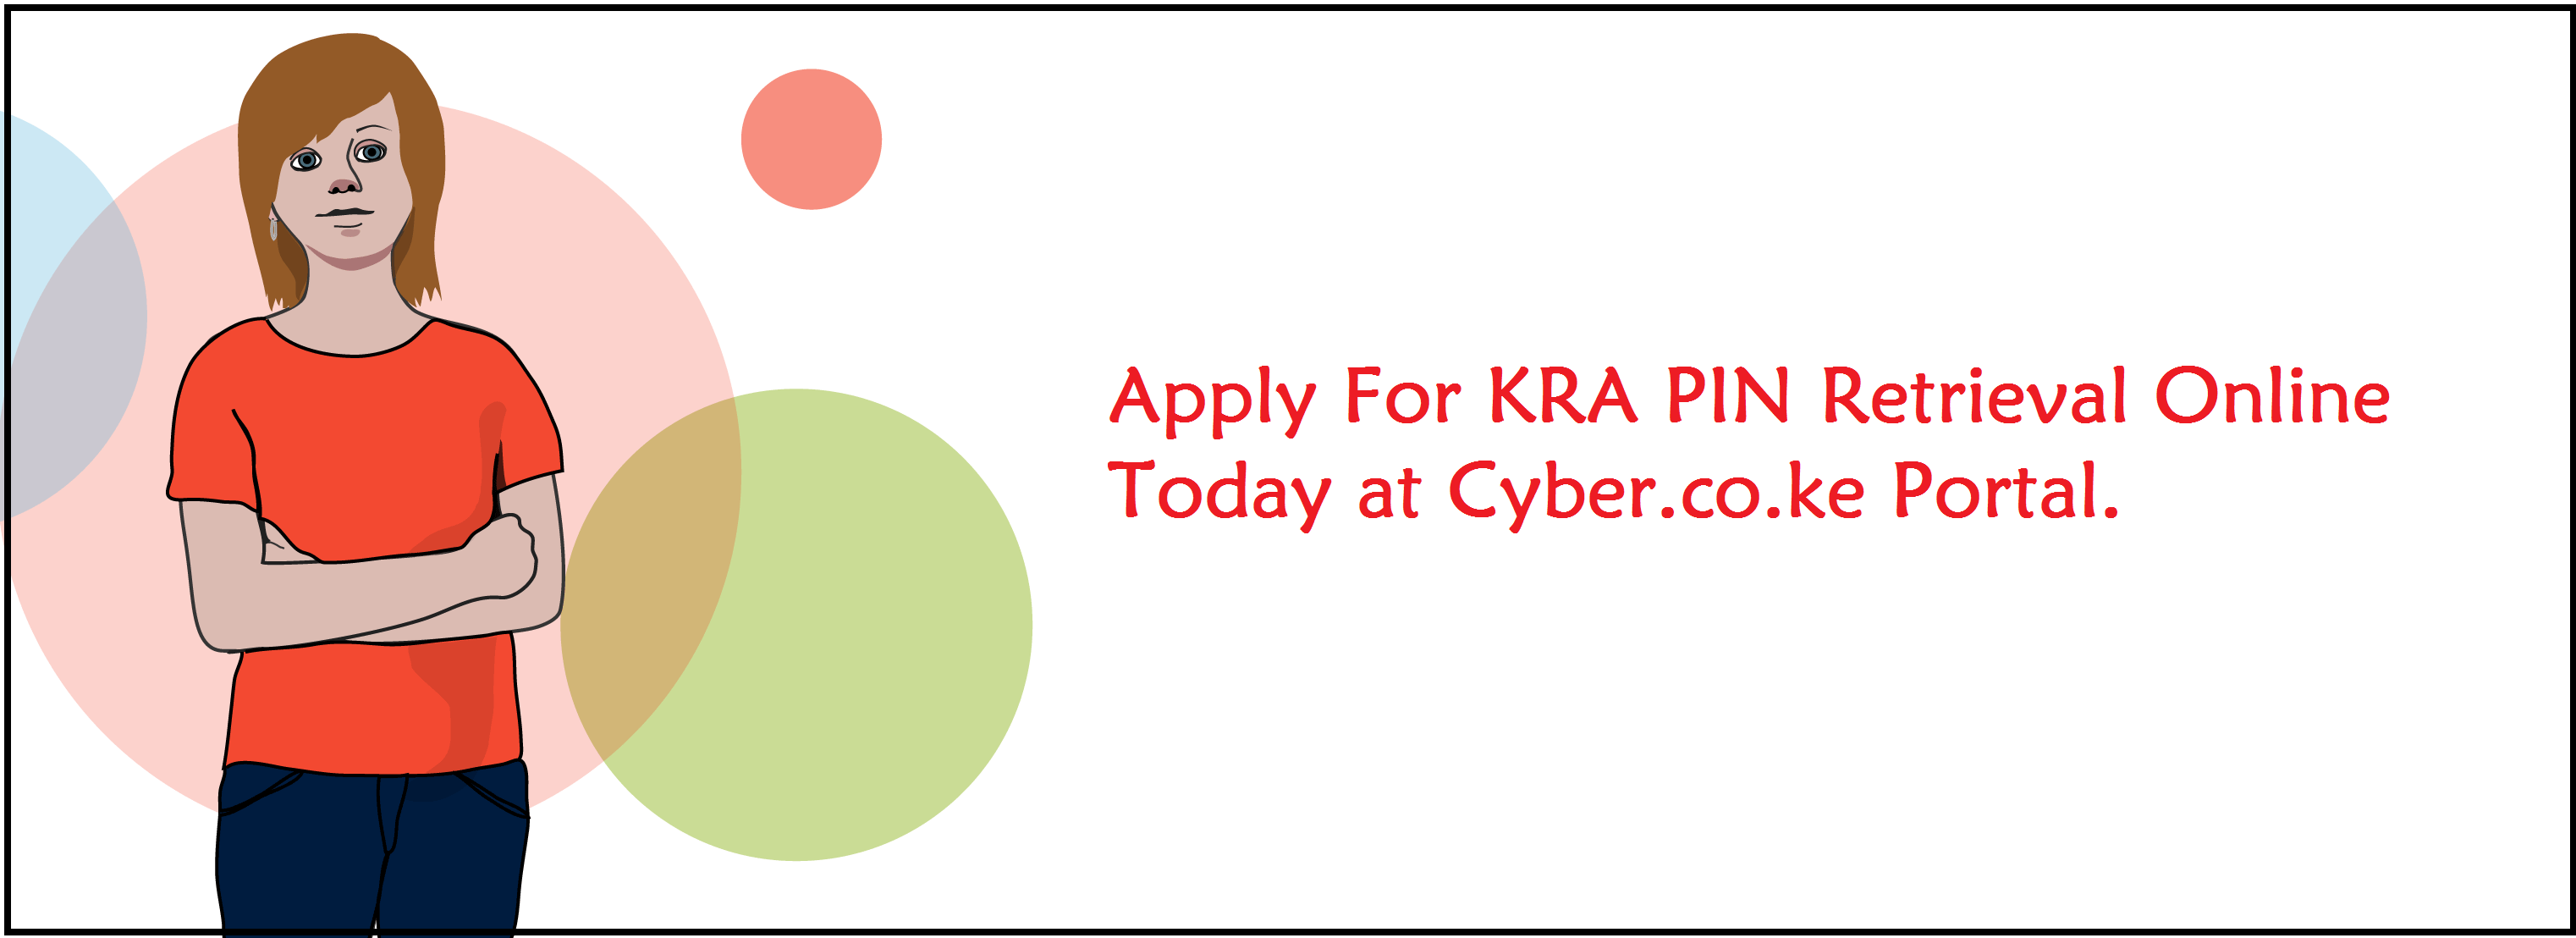 kra pin retrieval